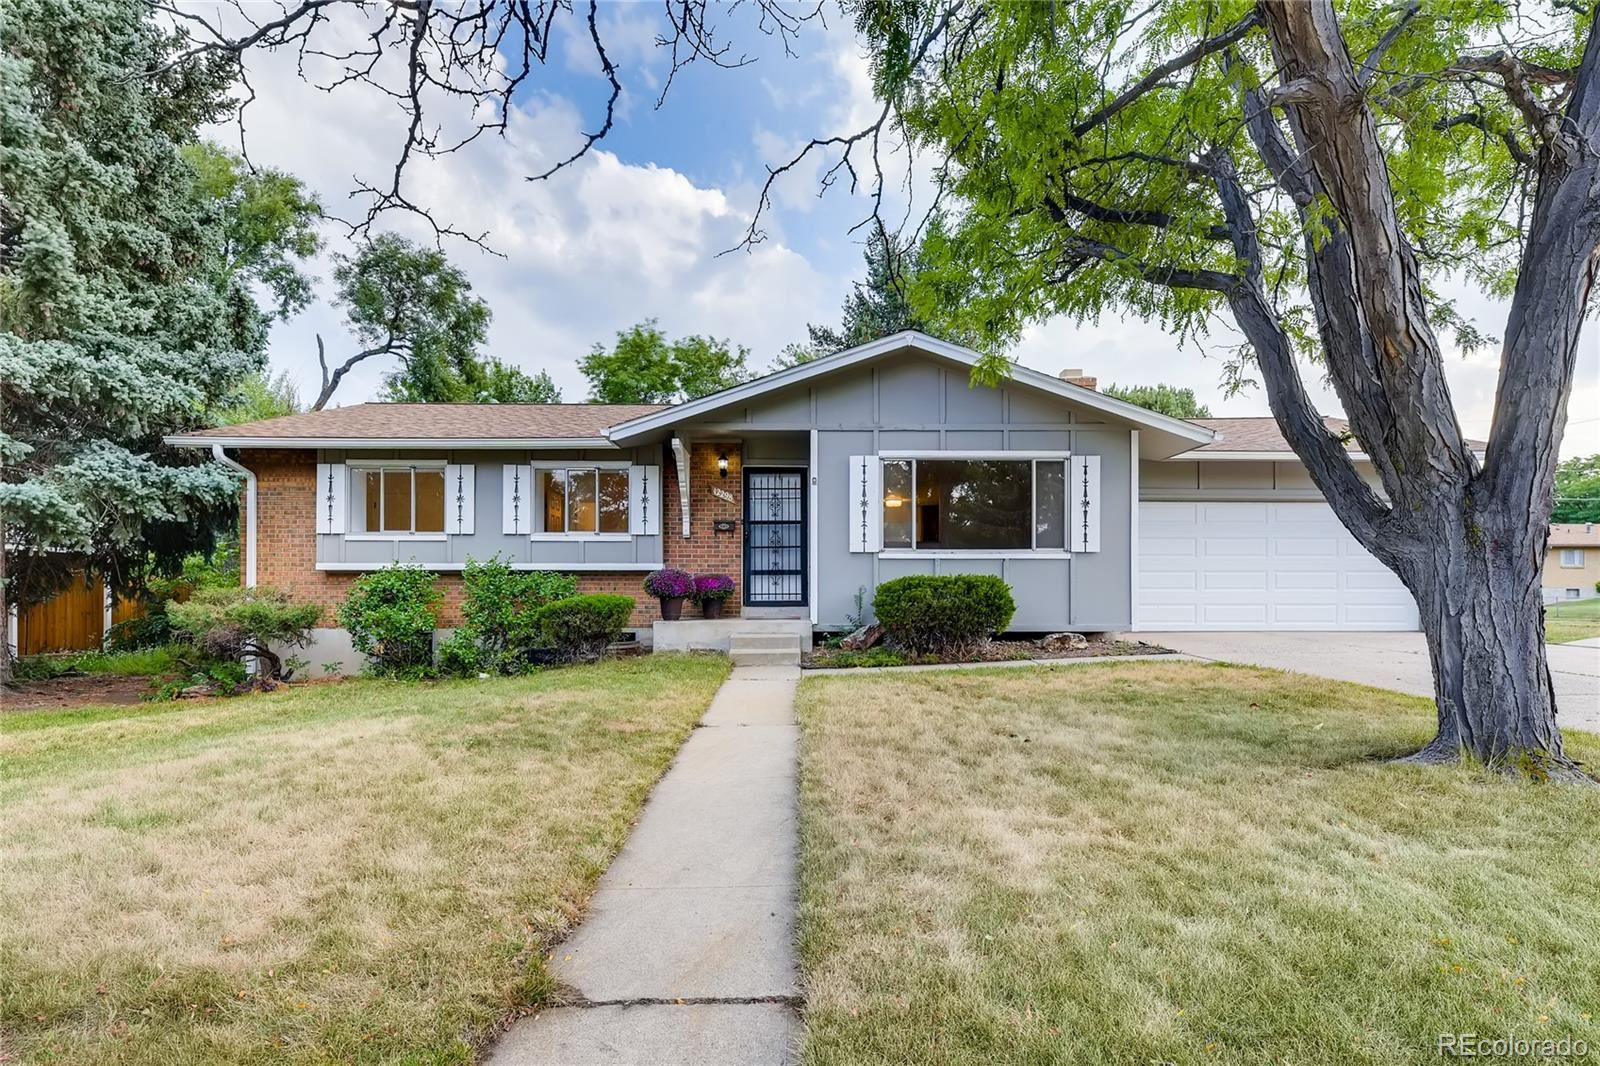 12298 W Tennessee Place, Lakewood, CO 80228 - #: 5035869